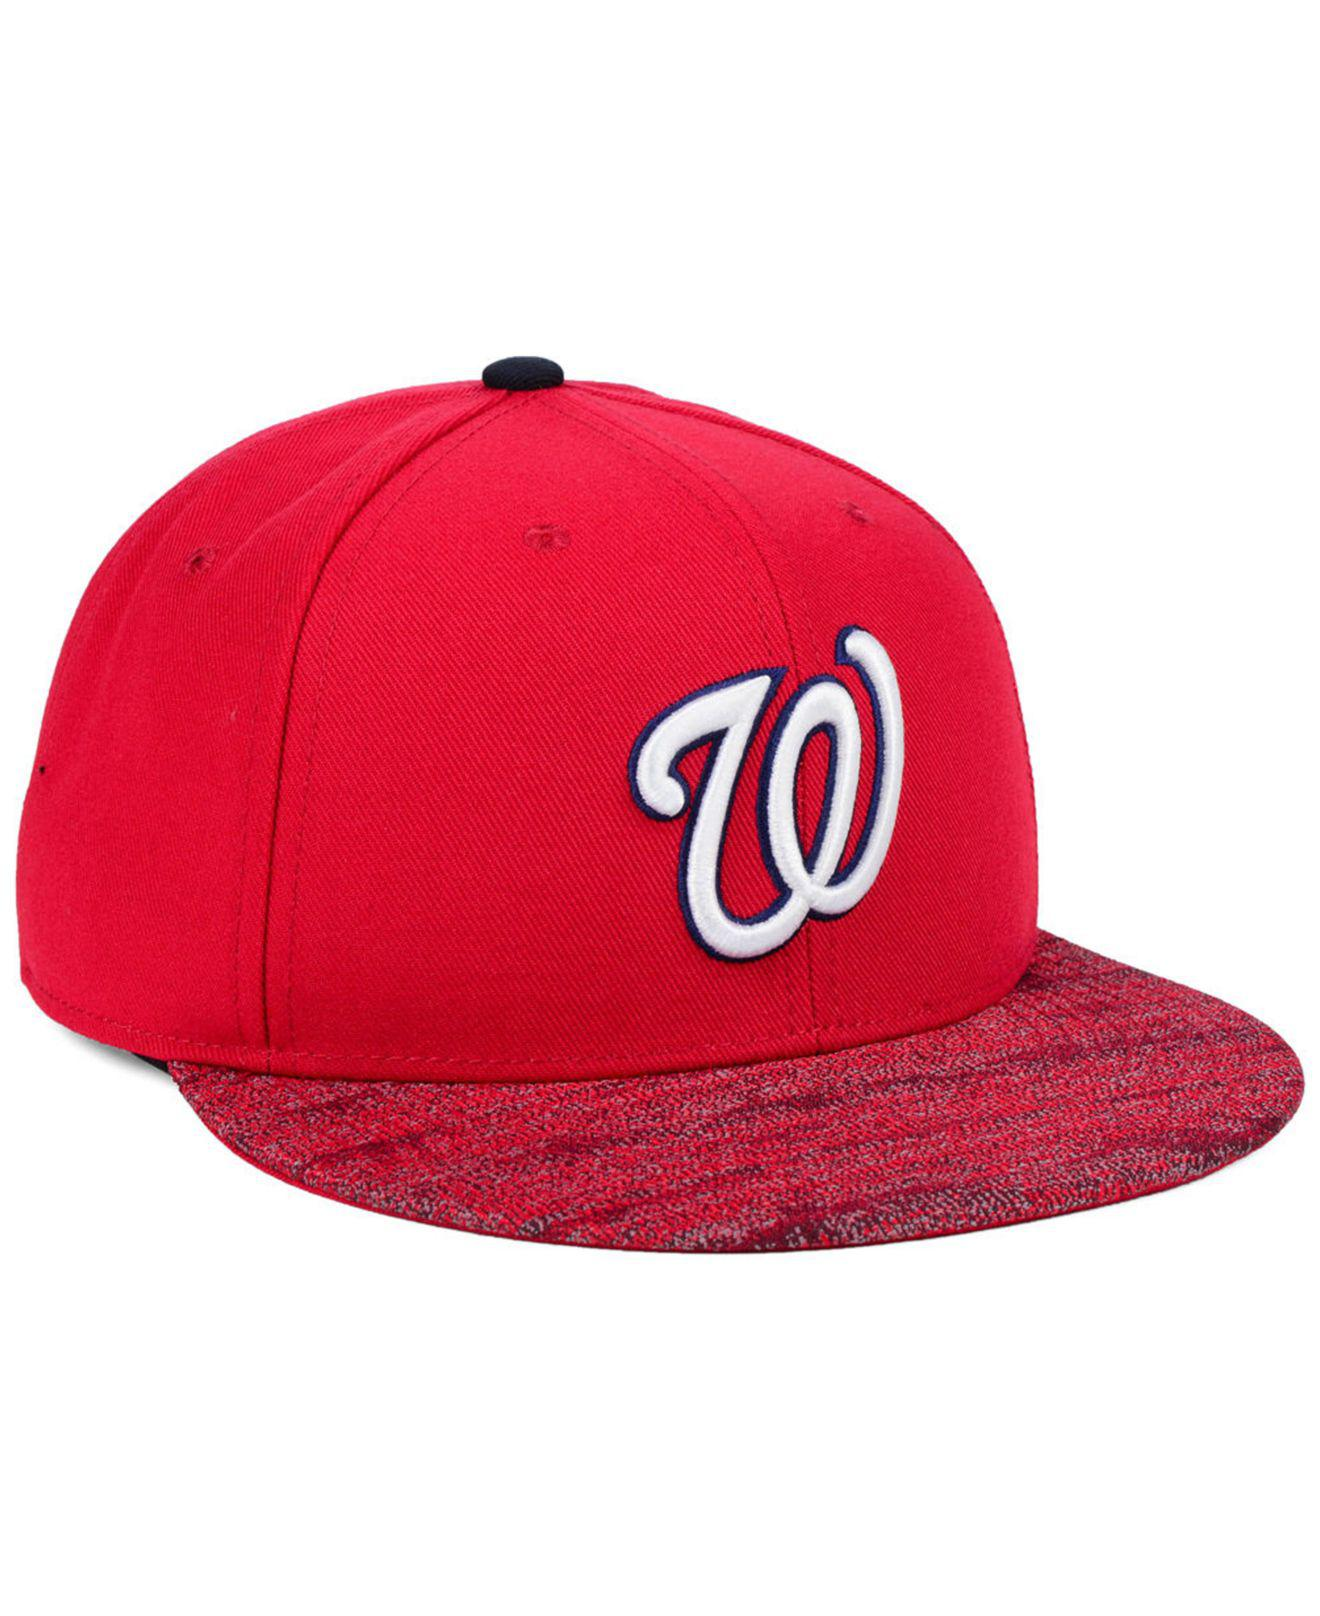 93264e18ef6b7 Lyst - Nike Washington Nationals Reverse New Day Snapback Cap in Red ...